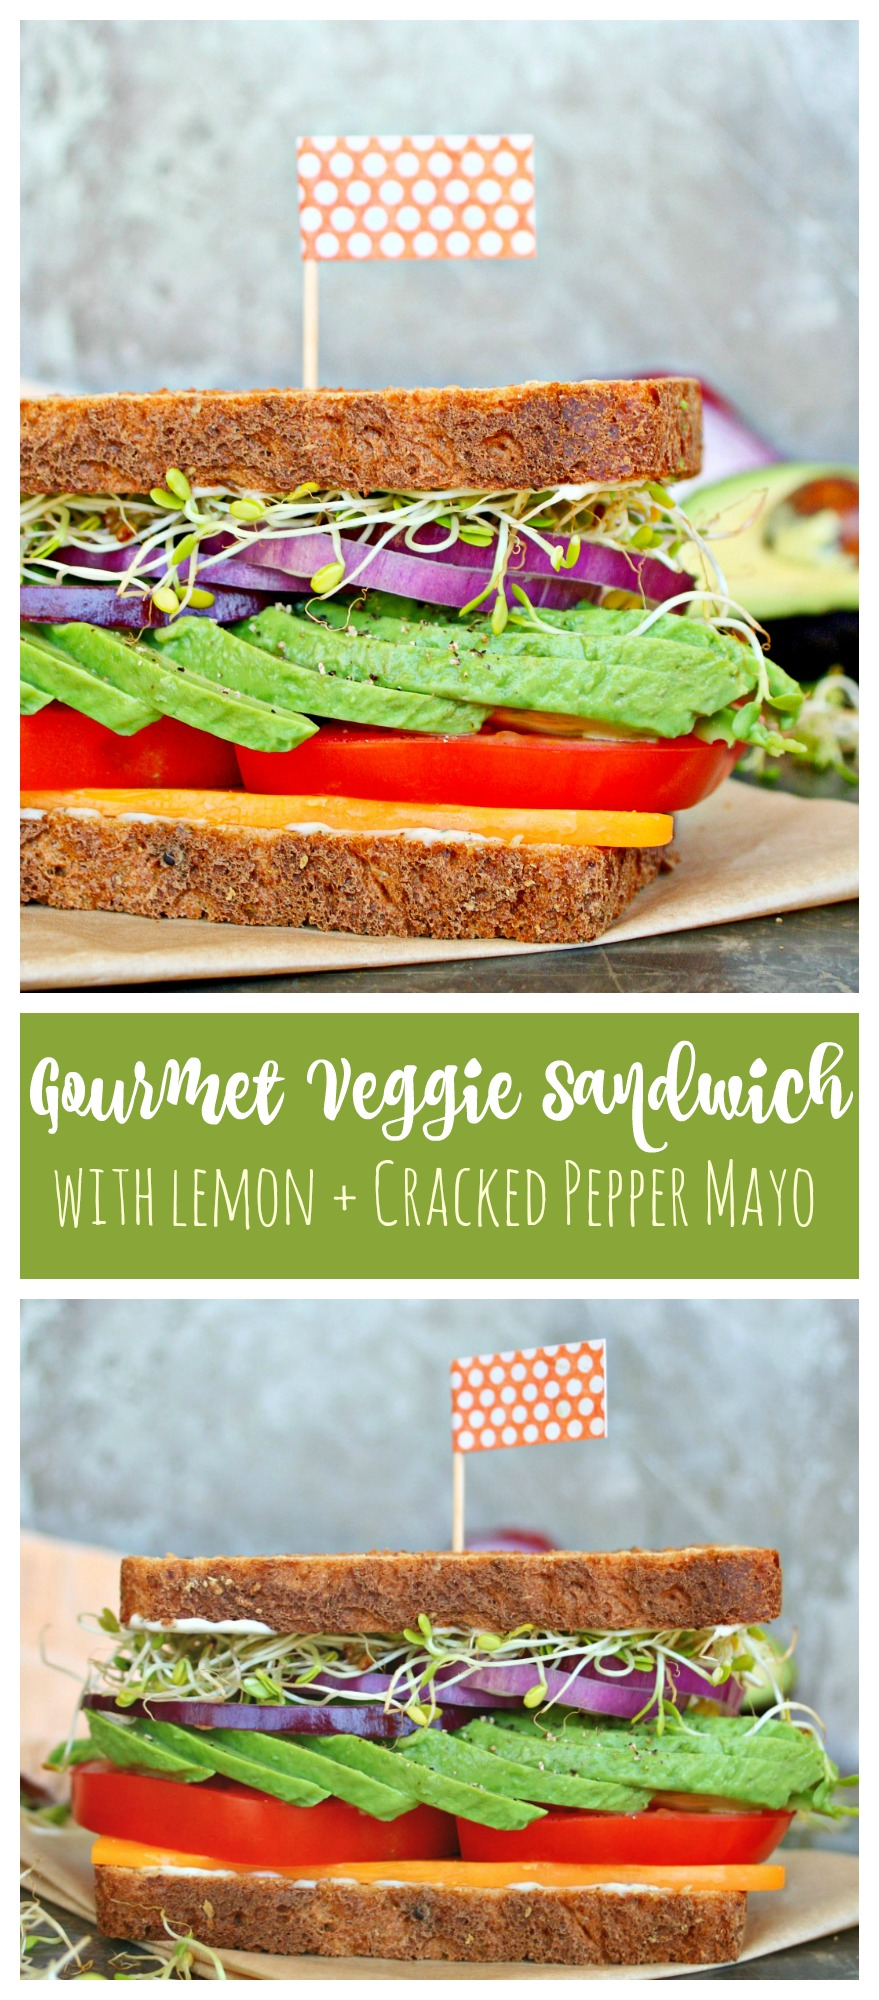 Gourmet Veggie Sandwich with Lemon and Cracked Pepper Mayo